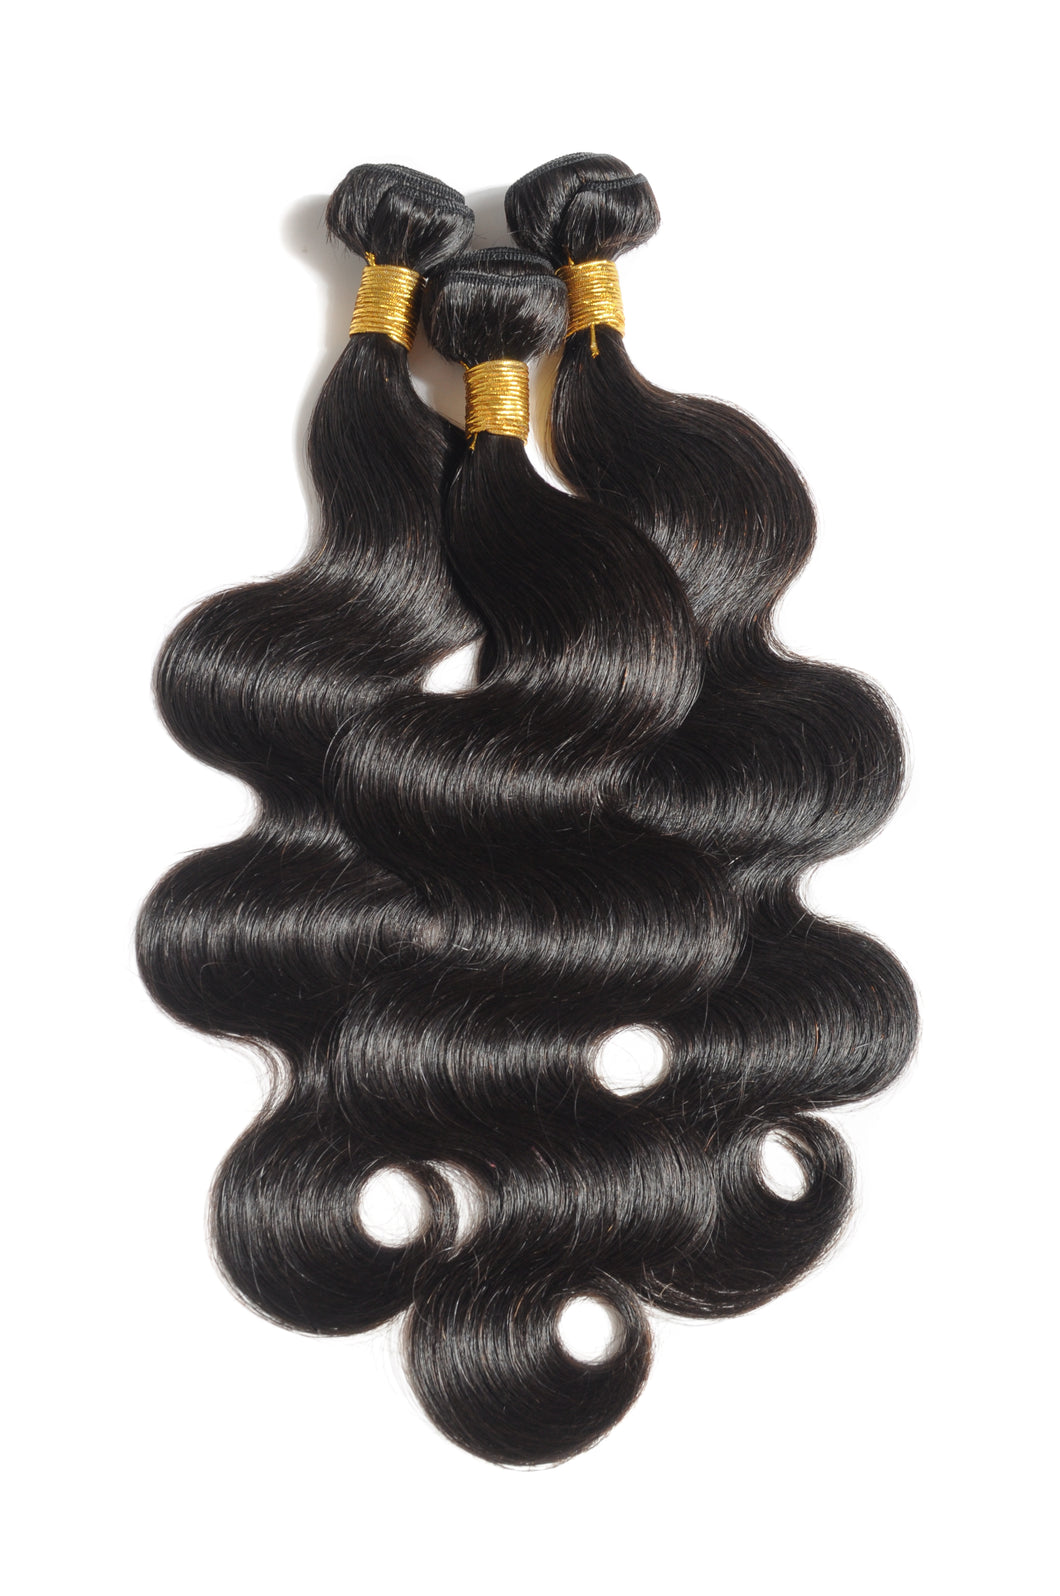 VIRGIN INDIAN HAIR - 16